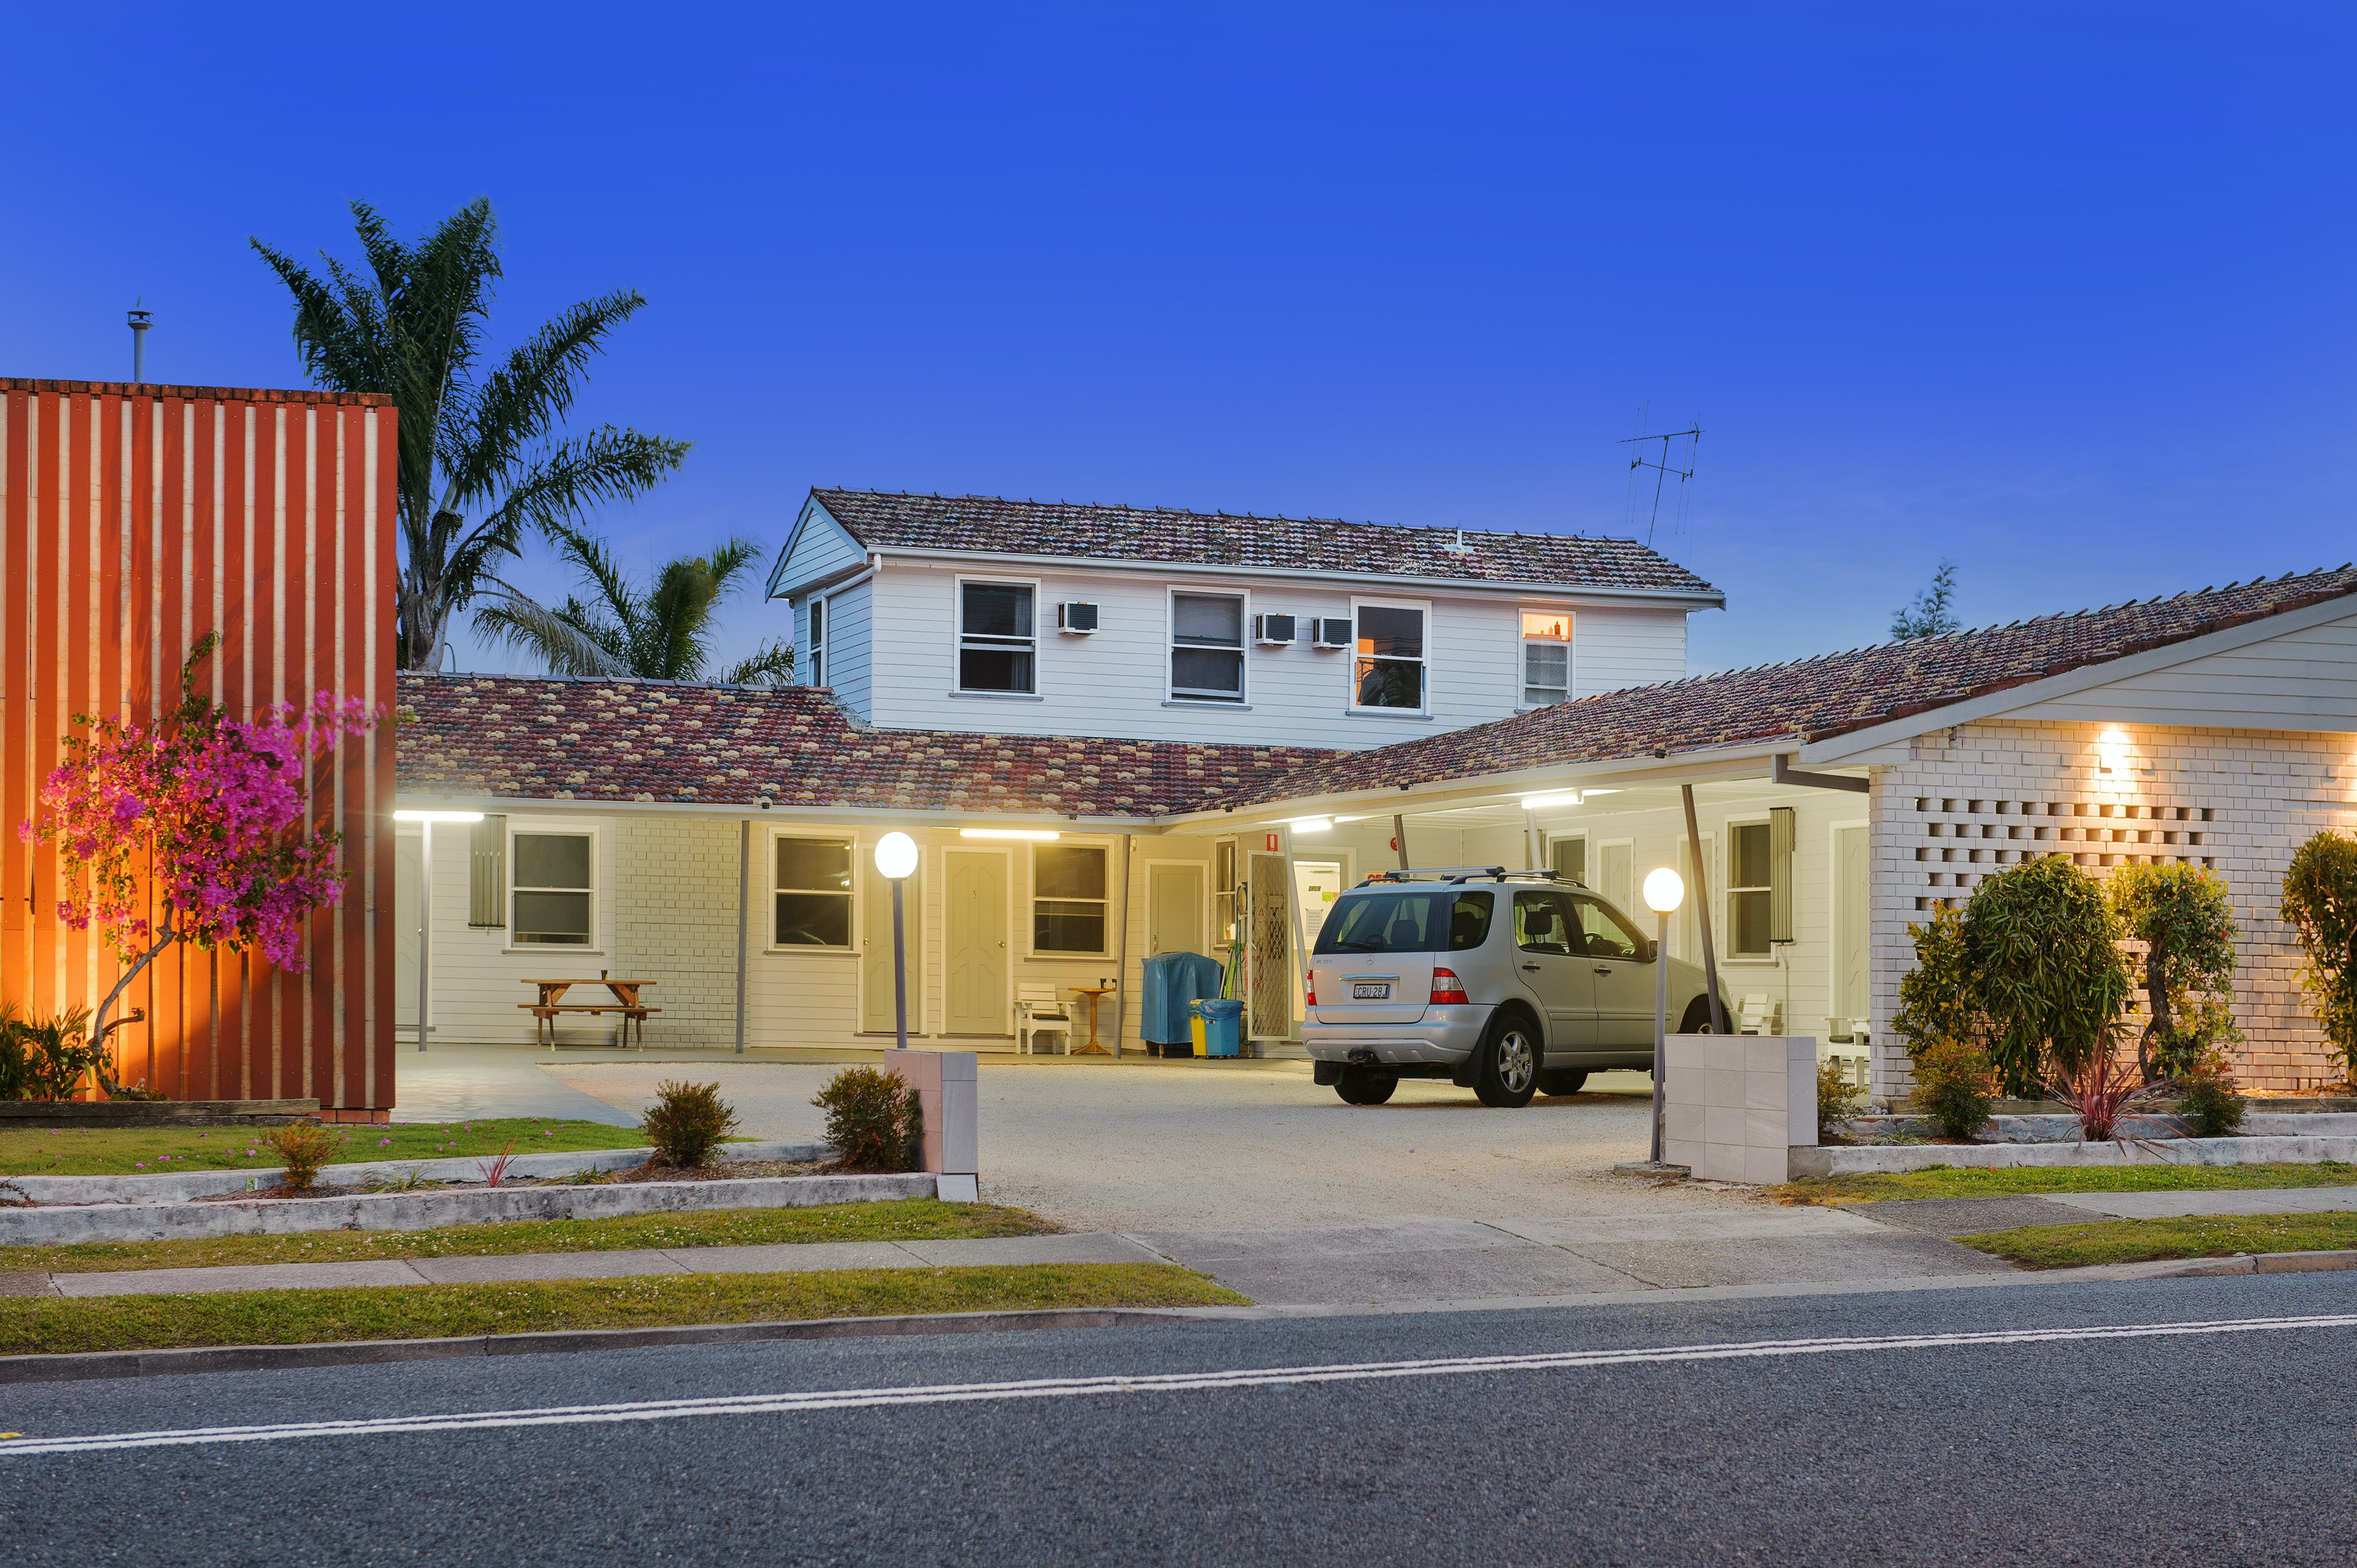 Wauchope Motel - Accommodation Noosa